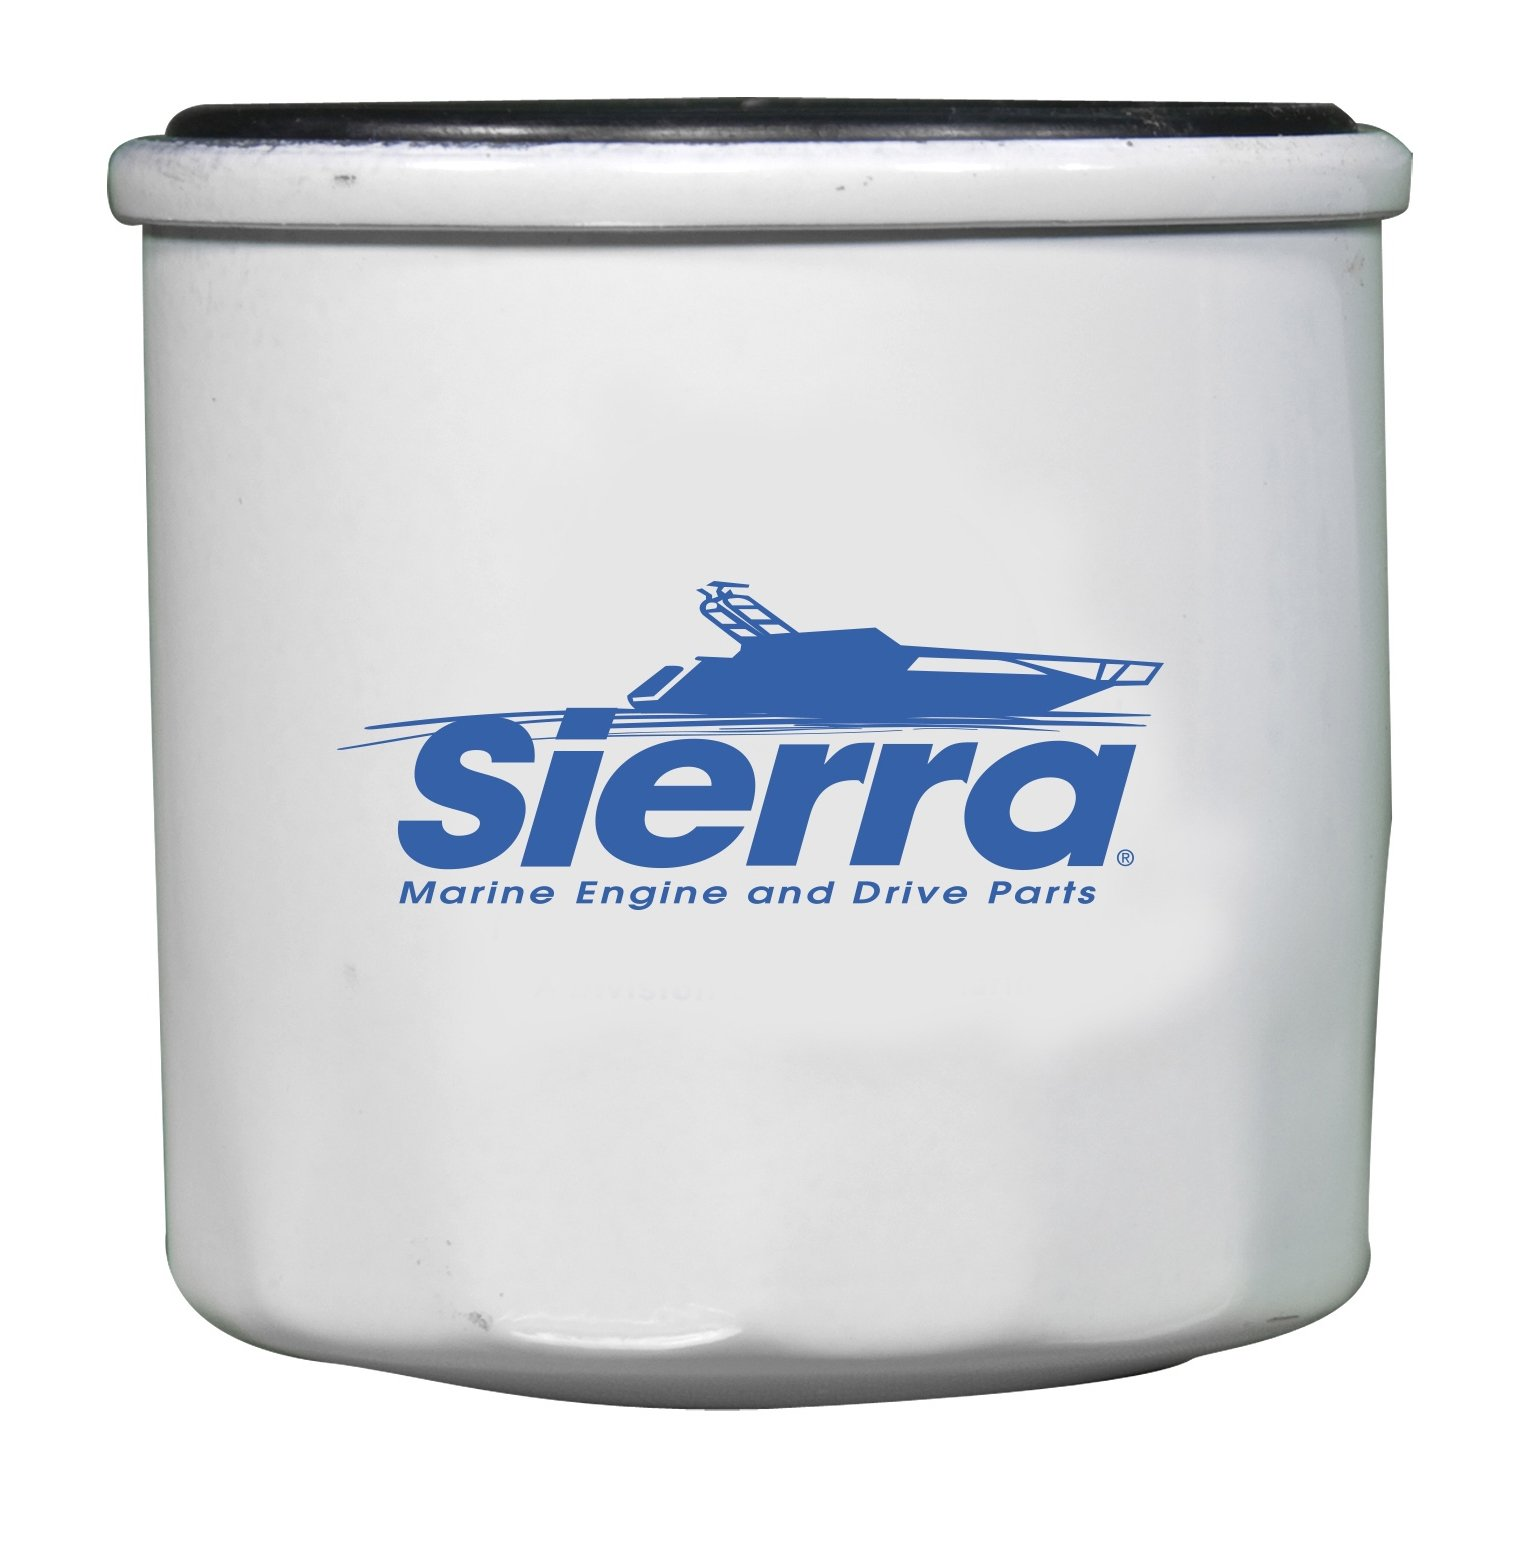 Buy Sierra 18 8700 Oil Filter For Yamaha Outboard Marine Engines Fuel 5gh 13440